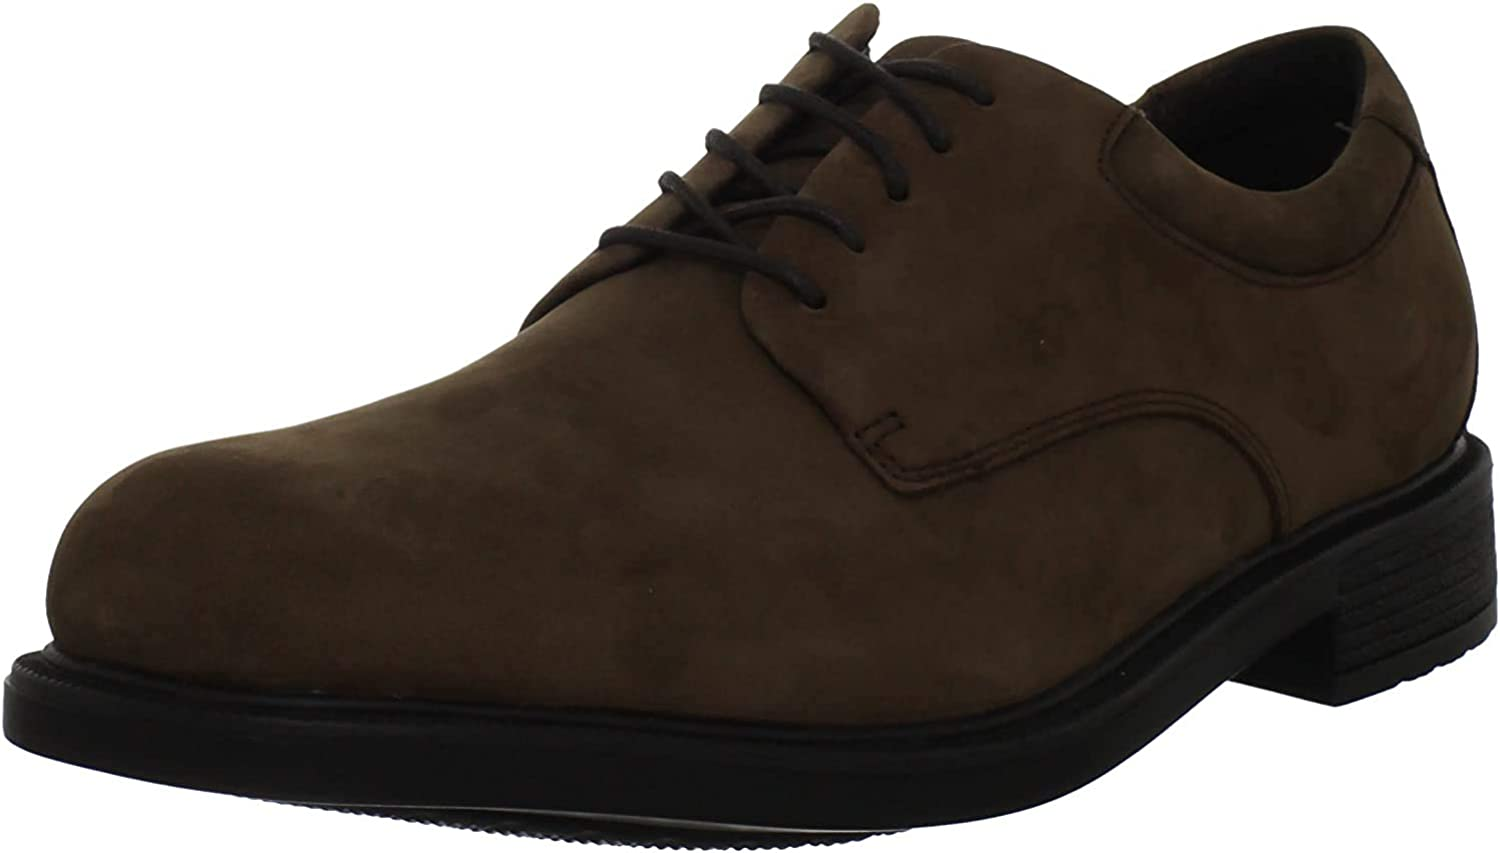 Rockport mens Gorgeous In a popularity Margin